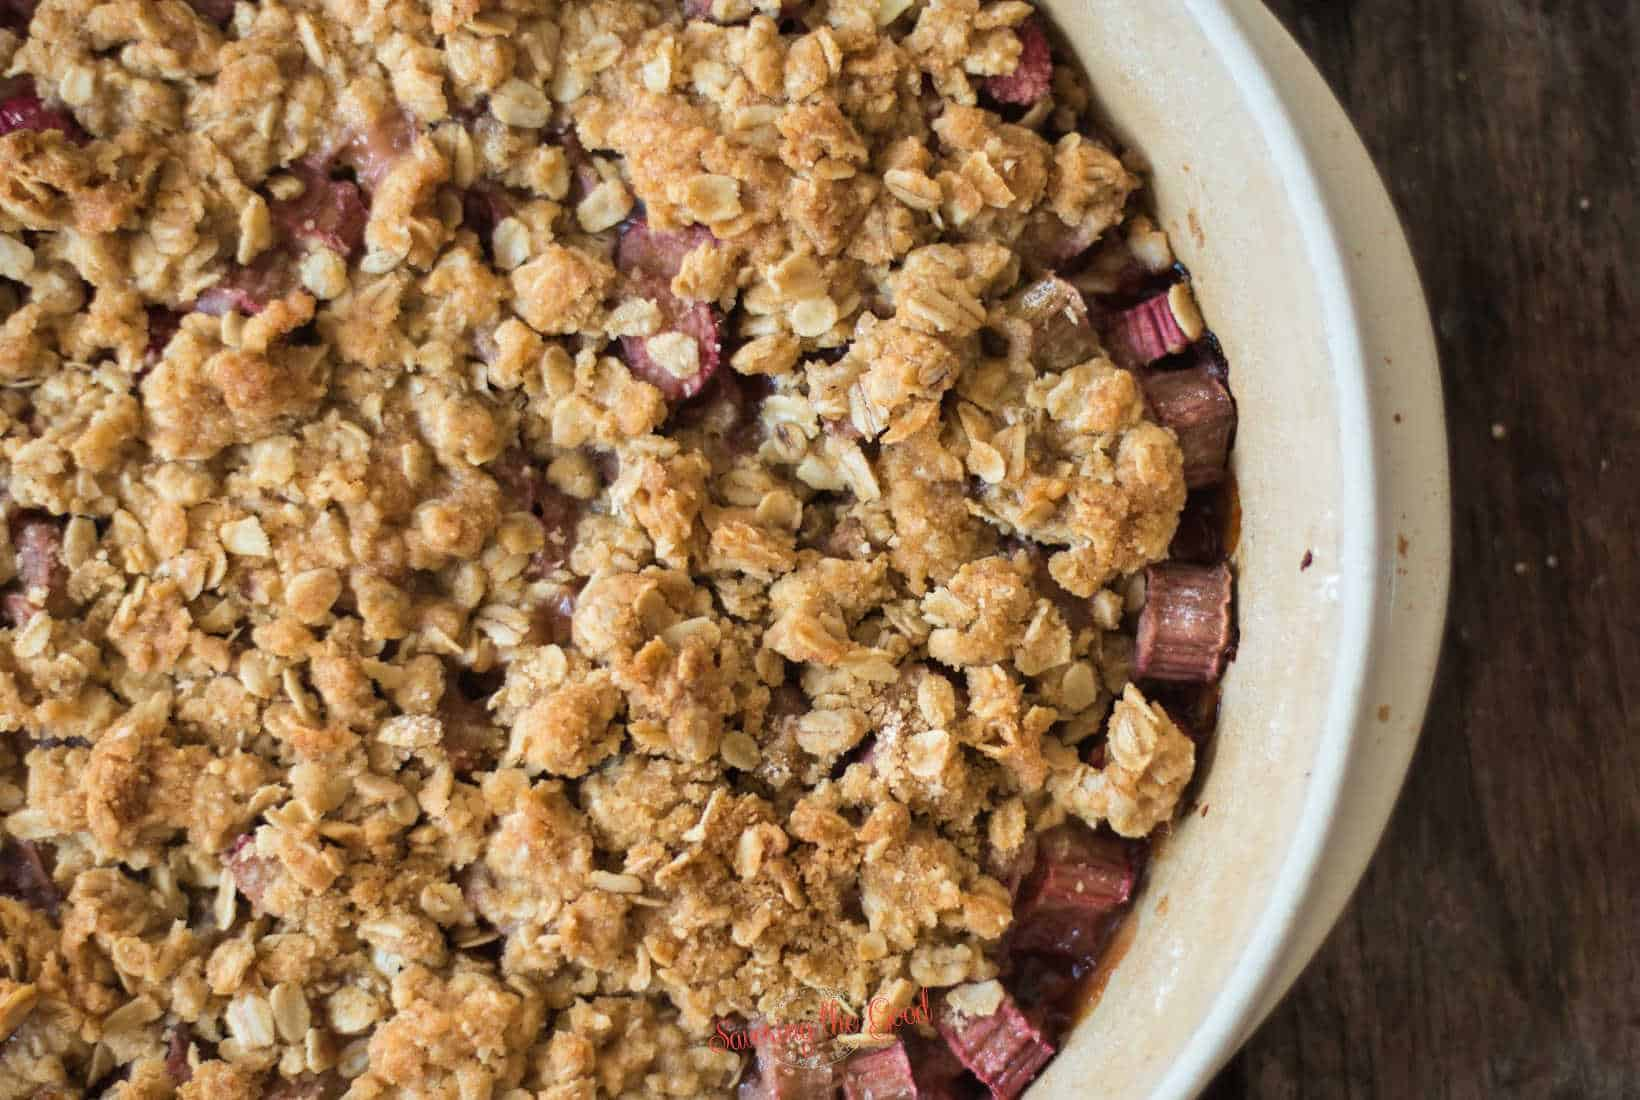 freshly baked Rhubarb Crumble in a stoneware serving dish